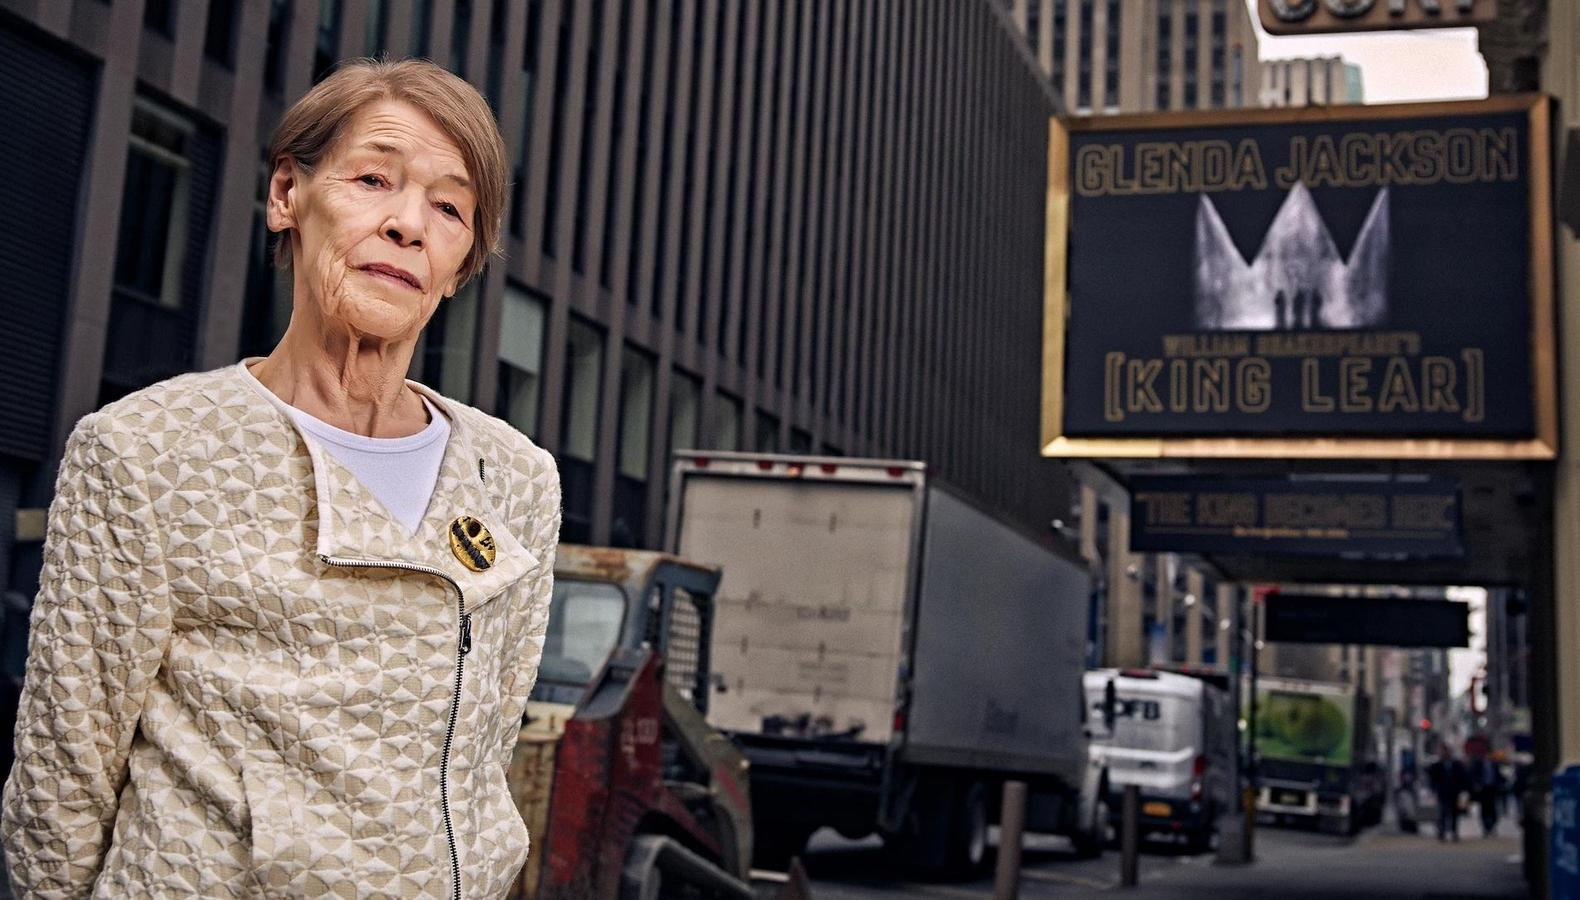 Tony Winner Glenda Jackson on Lear, Shakespeare, and Creativity